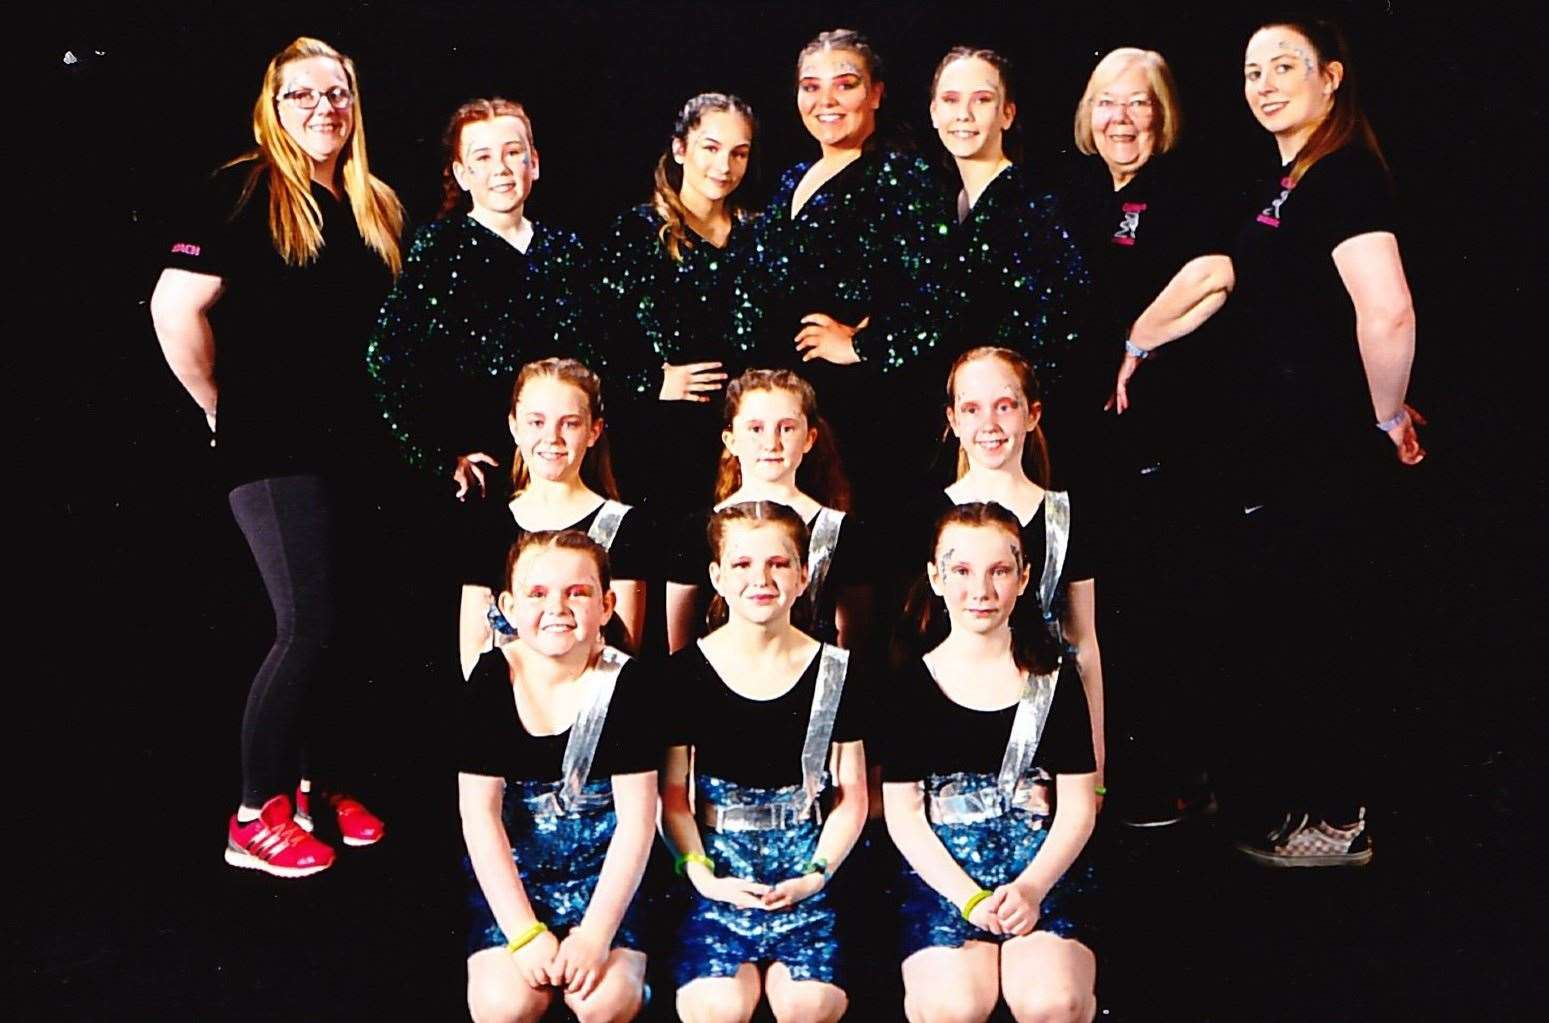 Caithness Rhythmic gymnasts who performed at Gymfest 2019 at Ravenscraig Regional Sports Facility, along with their coaches. Back row, from left: Alana McPhee, Ami Alexander, Edythe Cottam, Megan Wright, Abby Scott, Diane Gibson and Sine Hamilton (coaches). Middle row: Mazie McCulloch, Bethan Wood and Ellie McCulloch. Front: Zara Smith, Carys Gunn and Paige McPhee.